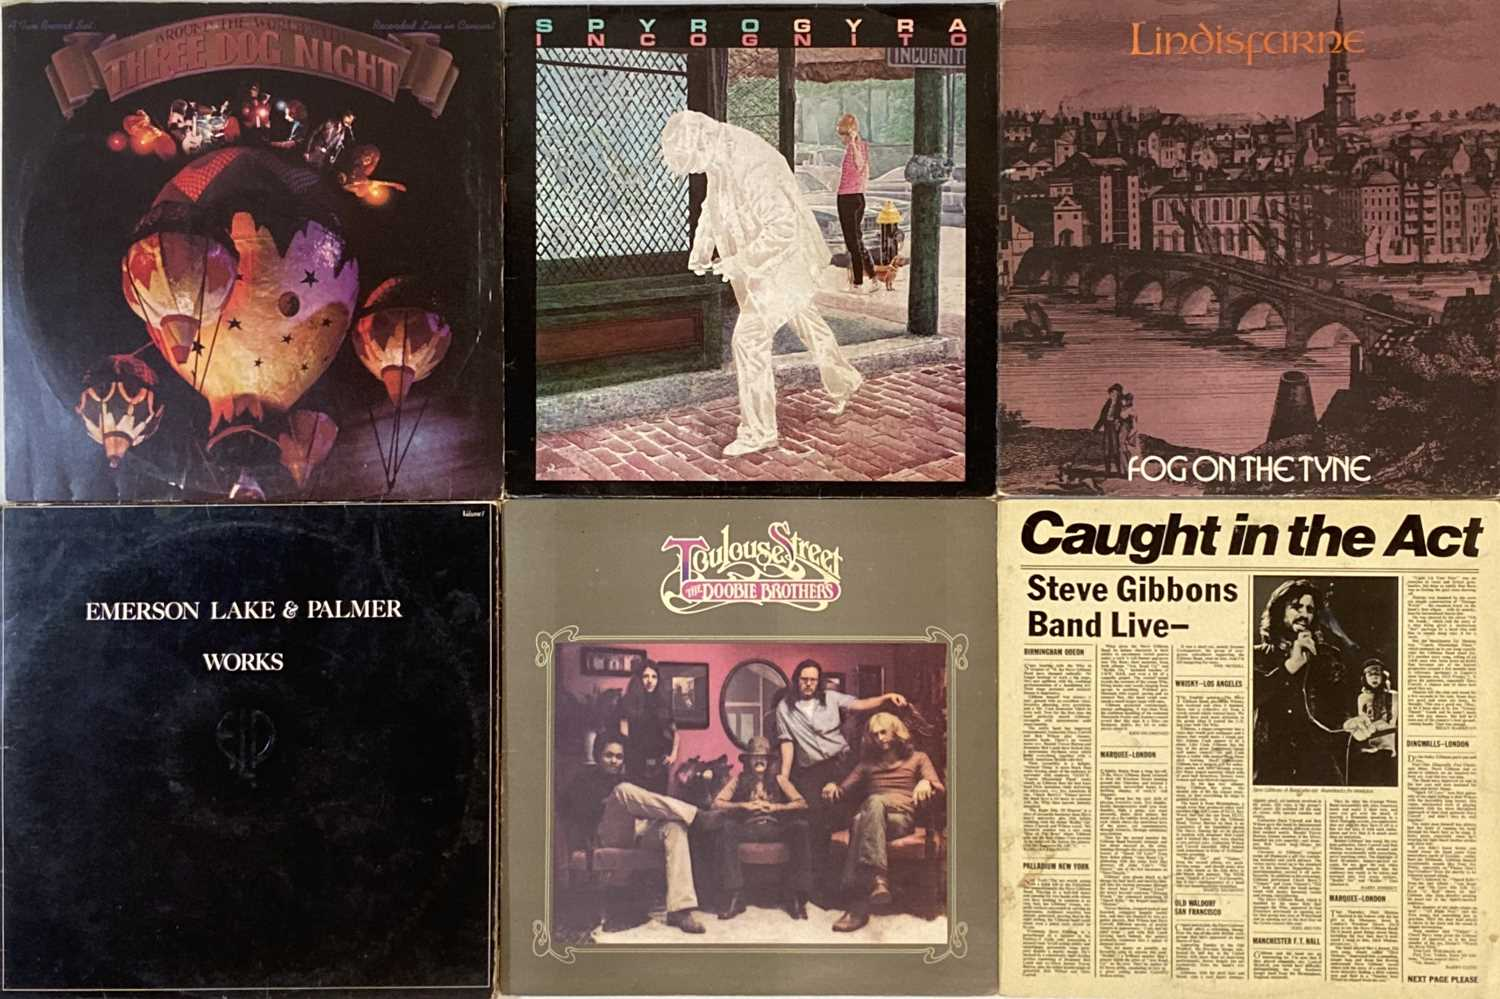 CLASSIC/ FOLK/ SOUTHERN ROCK - LPs - Image 4 of 6